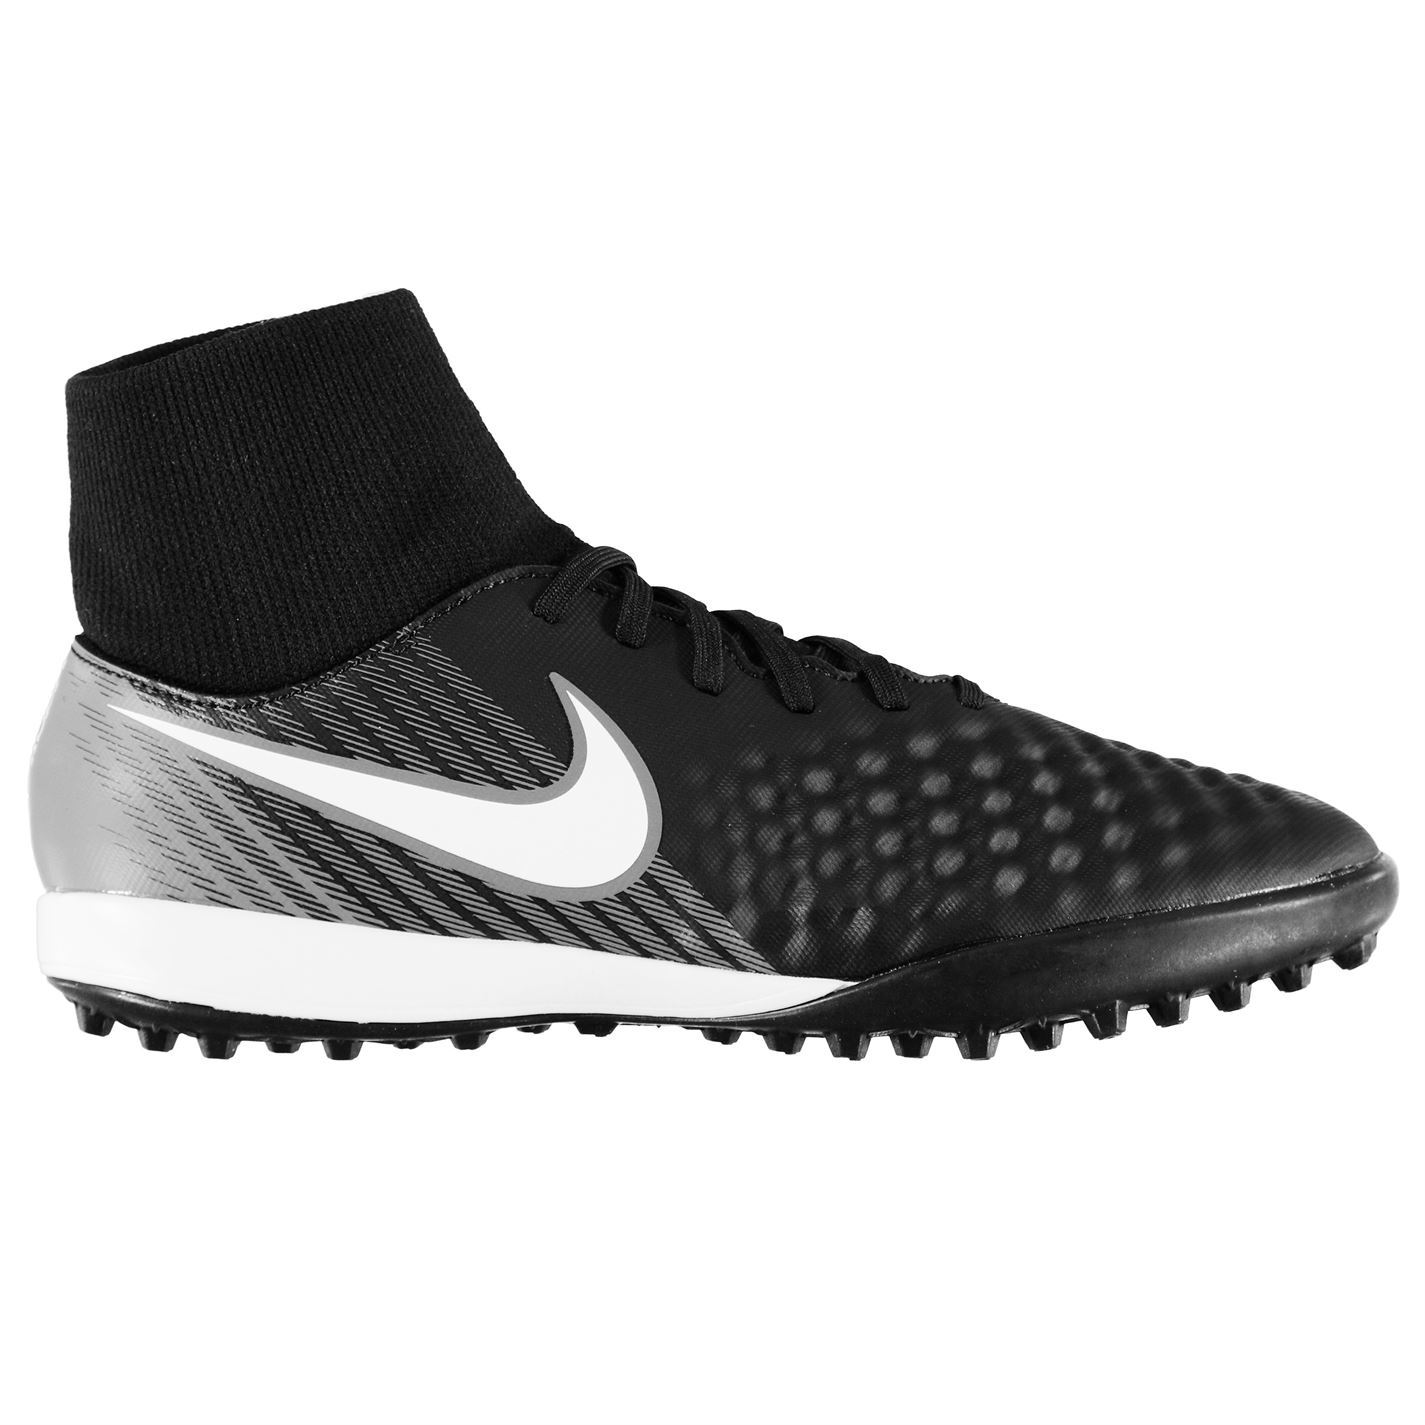 66e6438fc31 ... Nike Magista Onda II DF Astro Turf Football Trainers Mens Black Soccer  Shoes ...